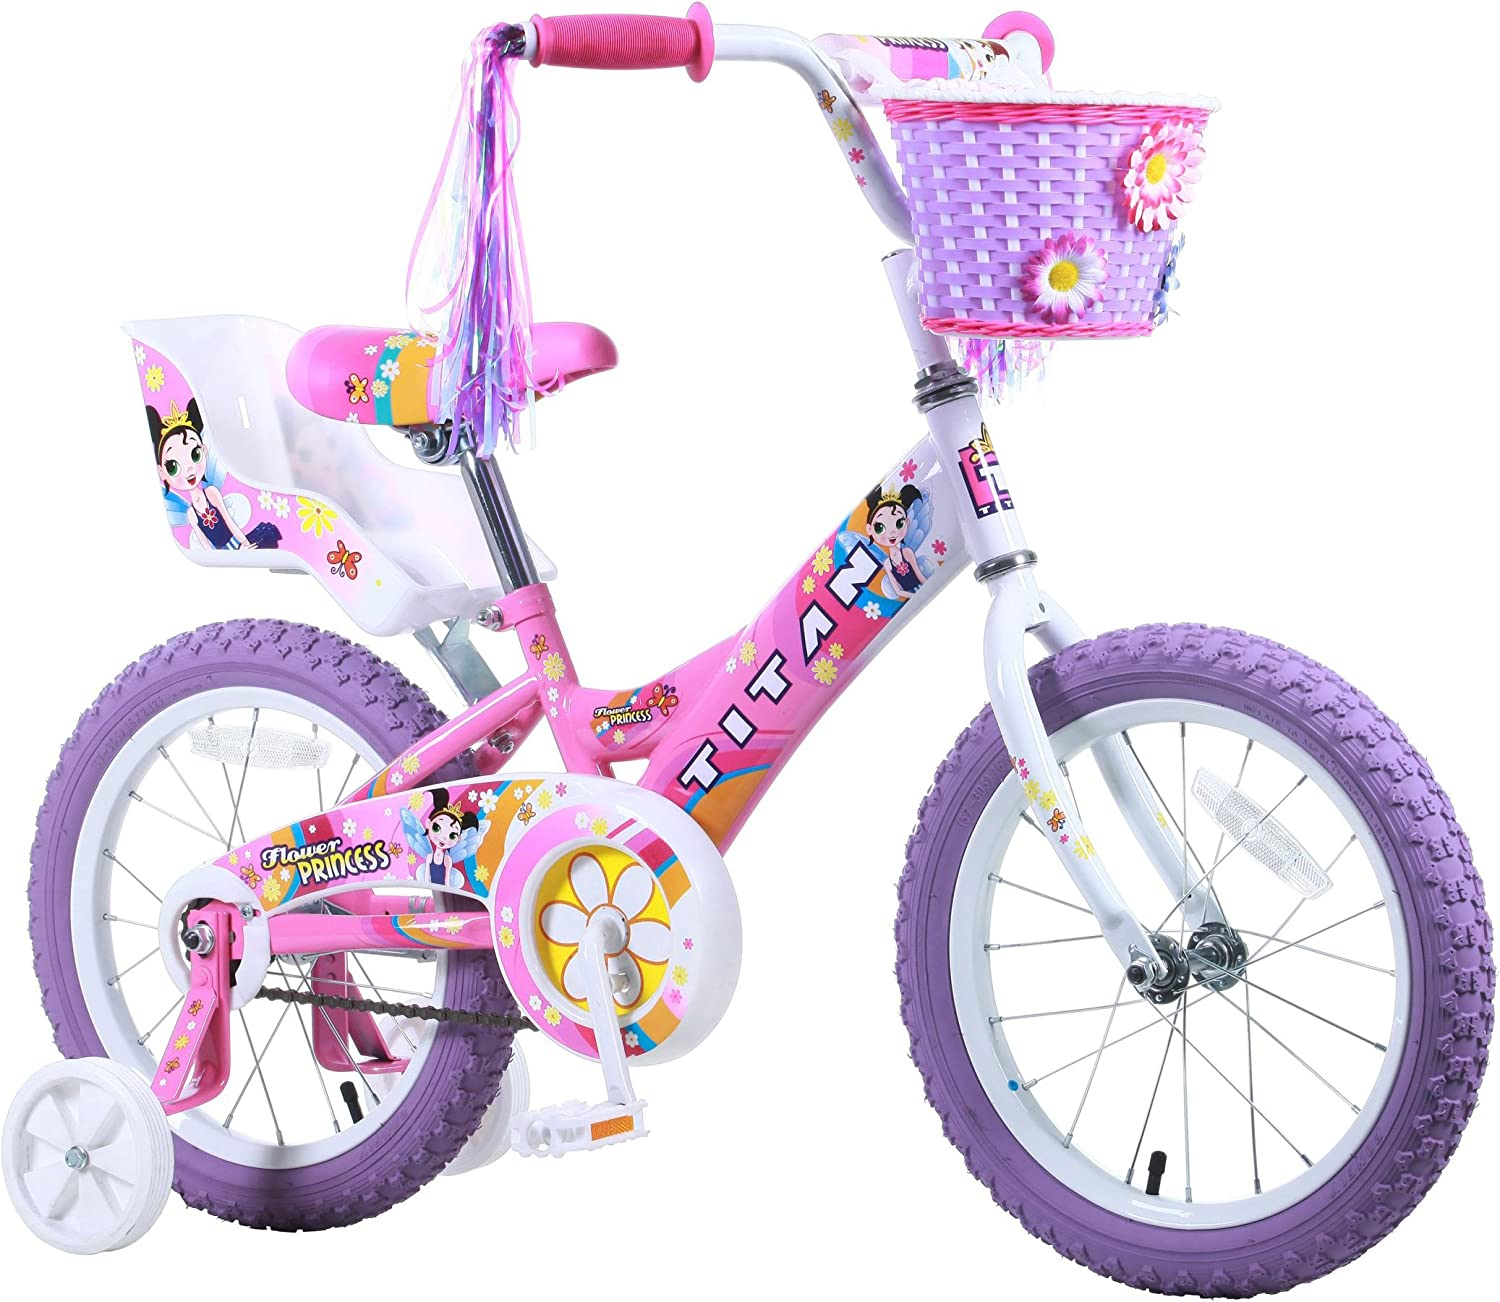 Titan Girl's Flower Princess BMX Bike, Pink